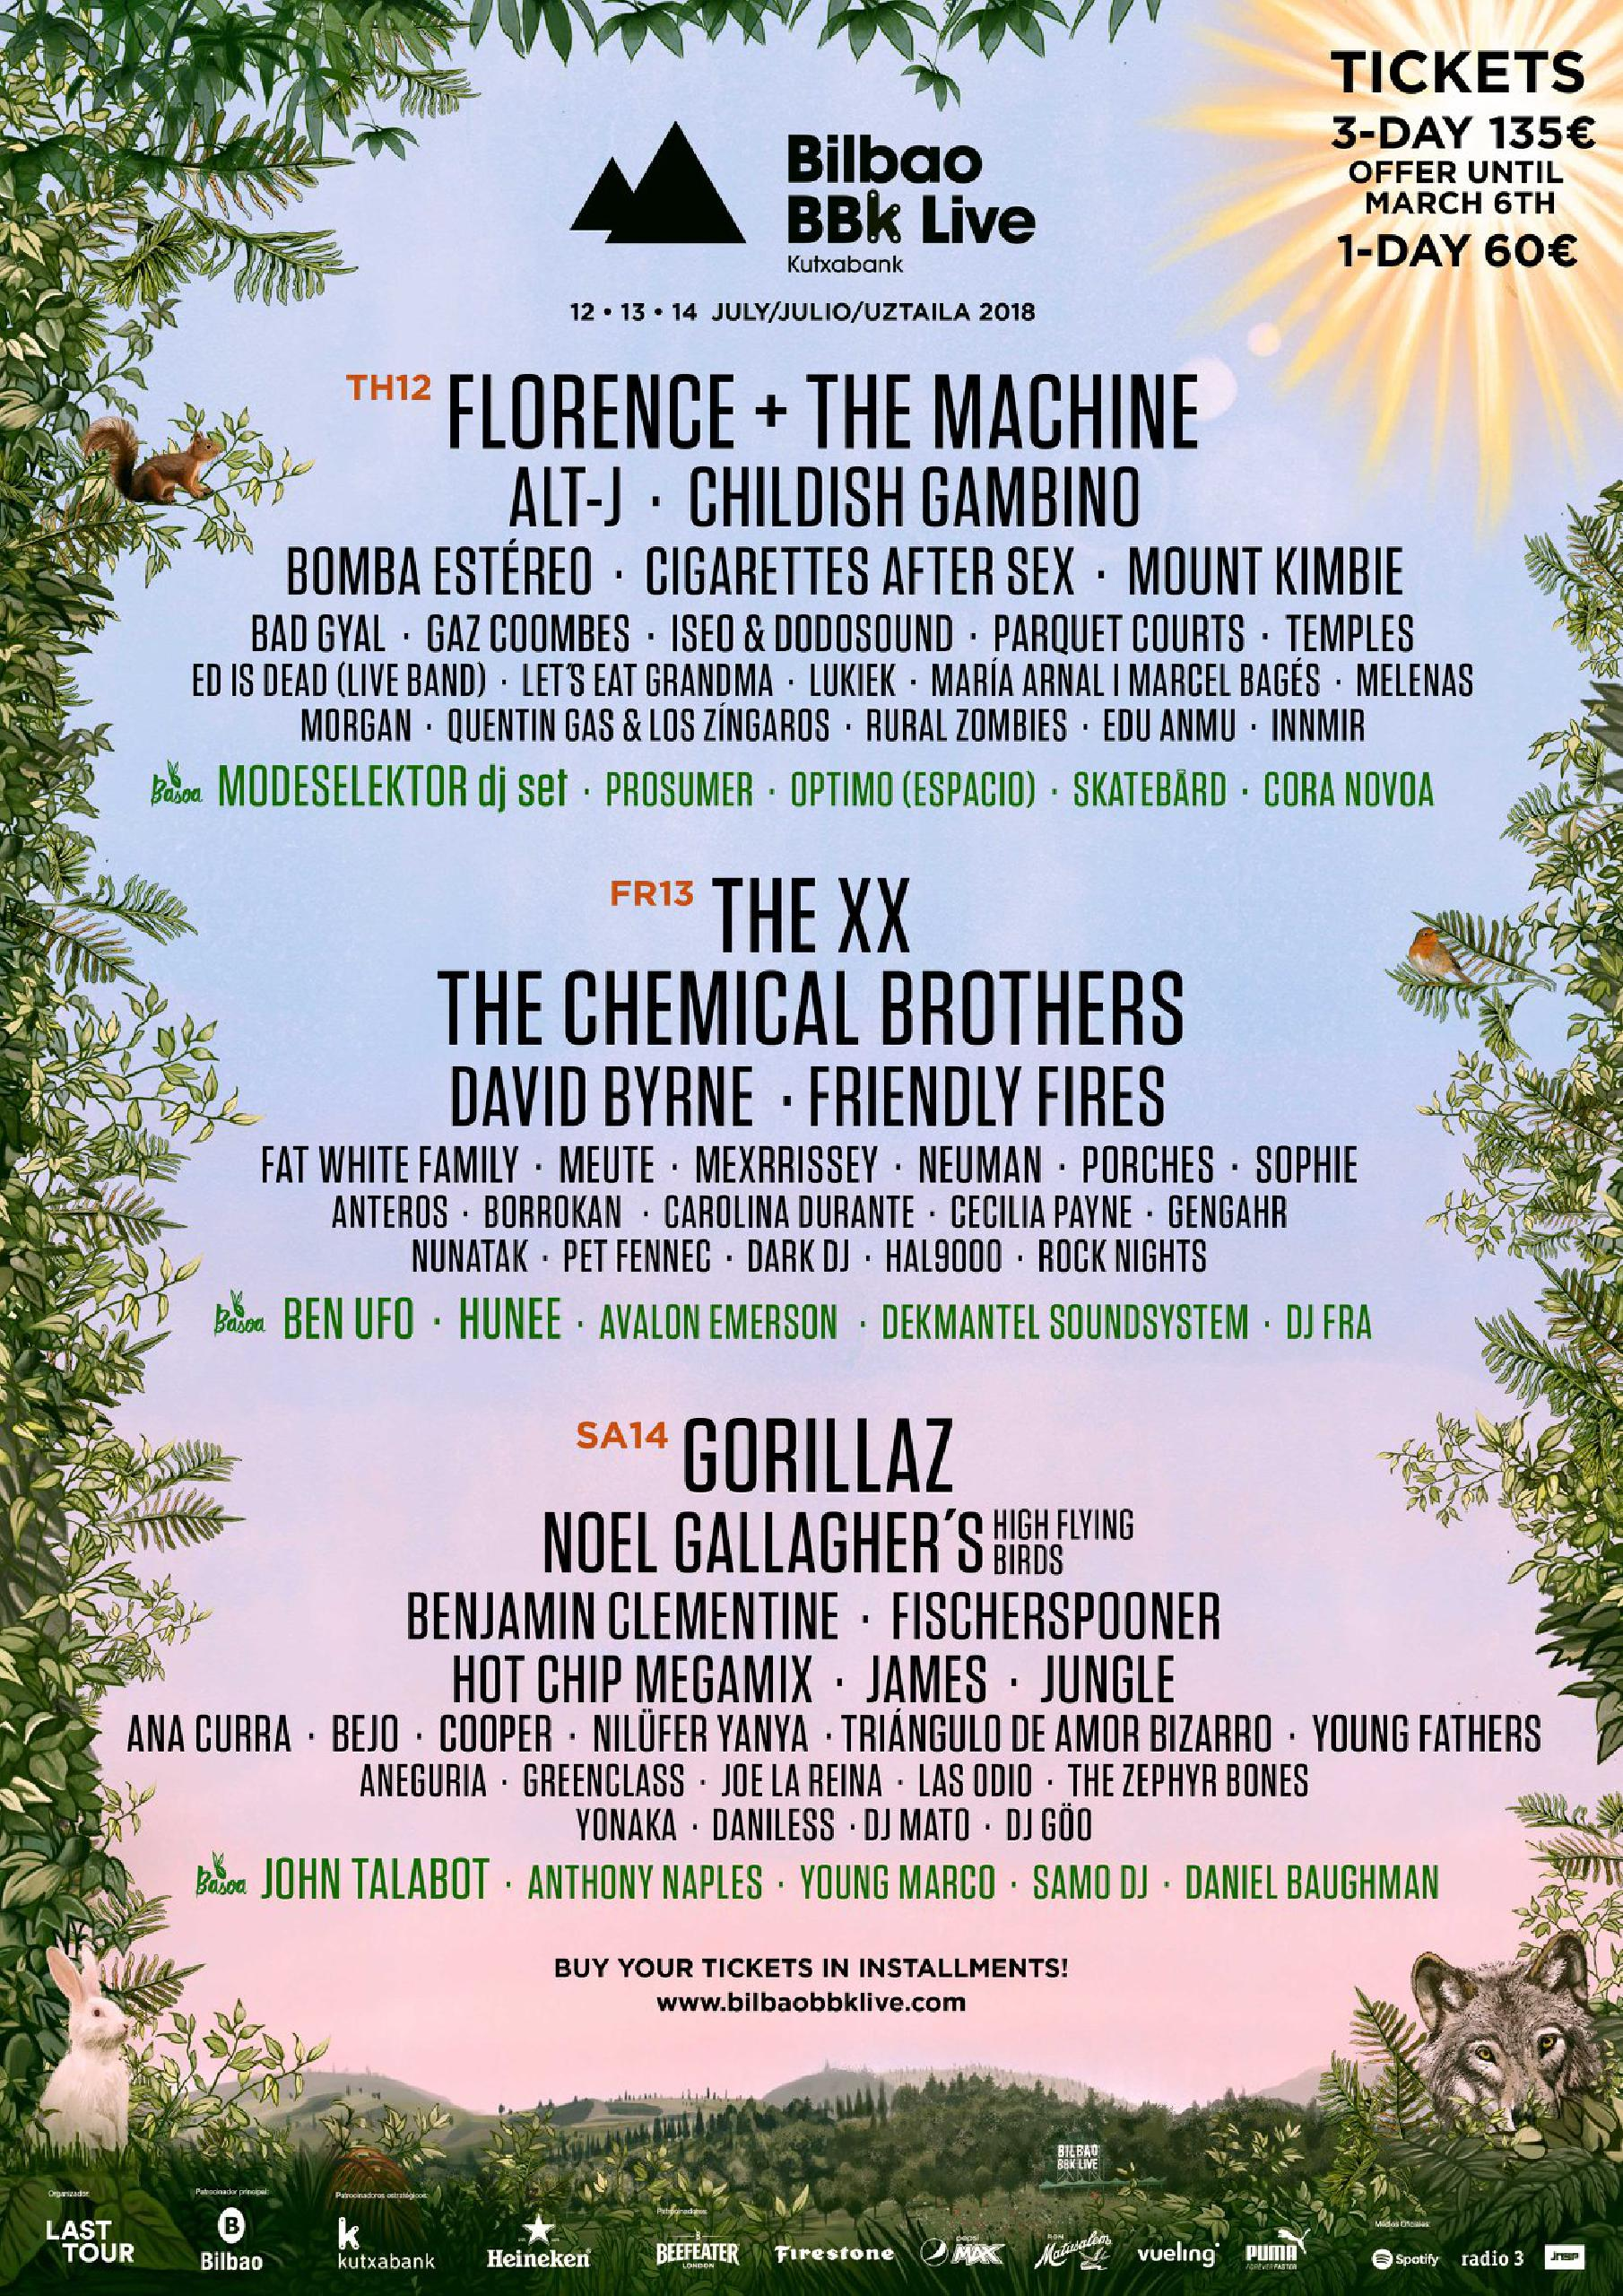 Cartel por días BBK Live 2018: Florence + The MAchine, Alt-J, Childish Gambino, The XX, The Chemical Brothers, David Byrne, Gorillaz, Noel Gallagher, Benjamin Clementine